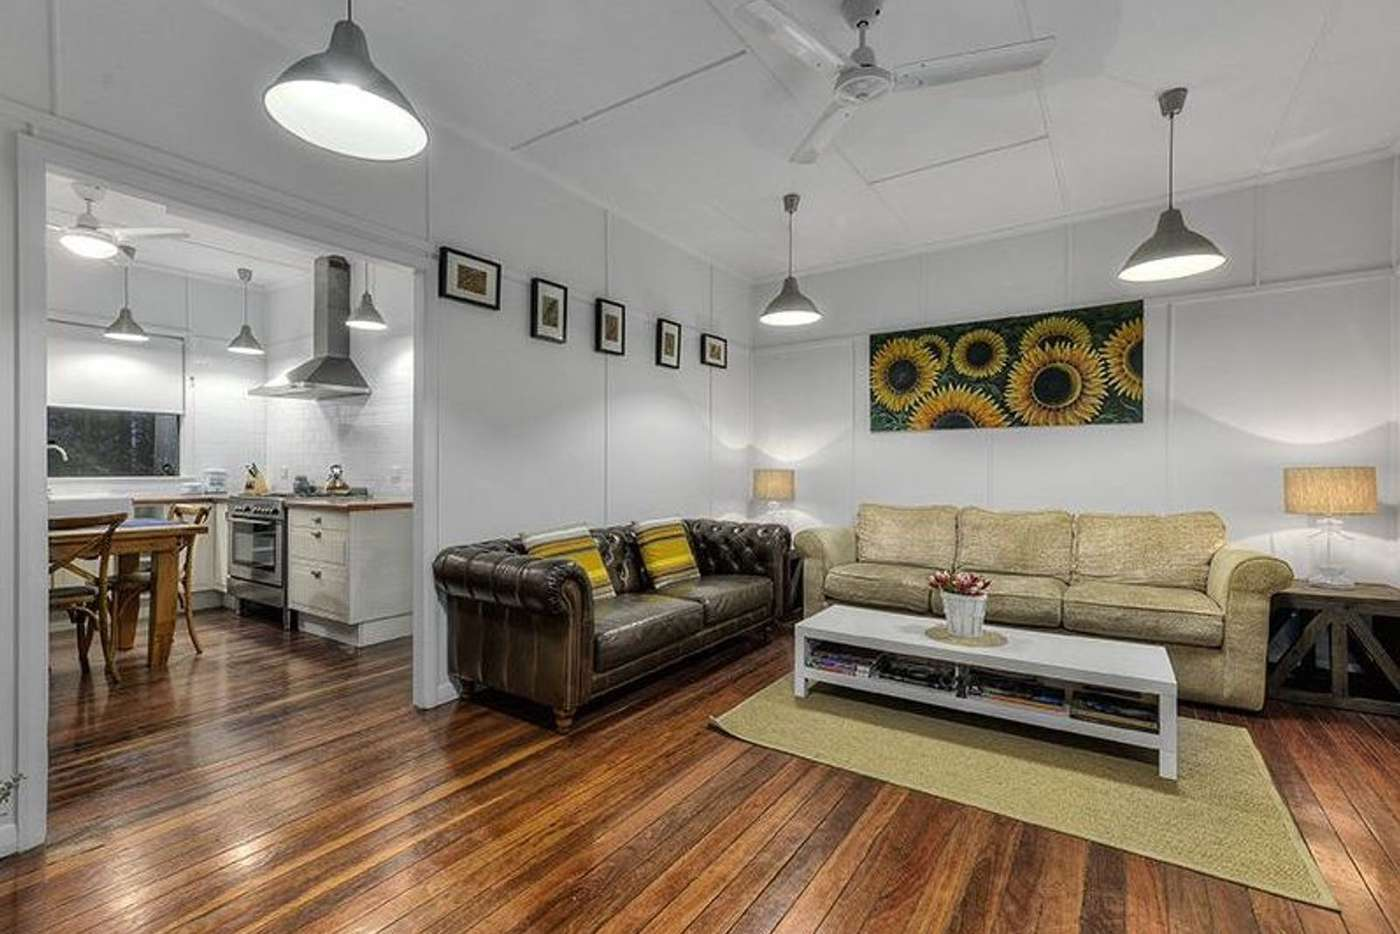 Main view of Homely house listing, 285 Bennetts Road, Norman Park QLD 4170